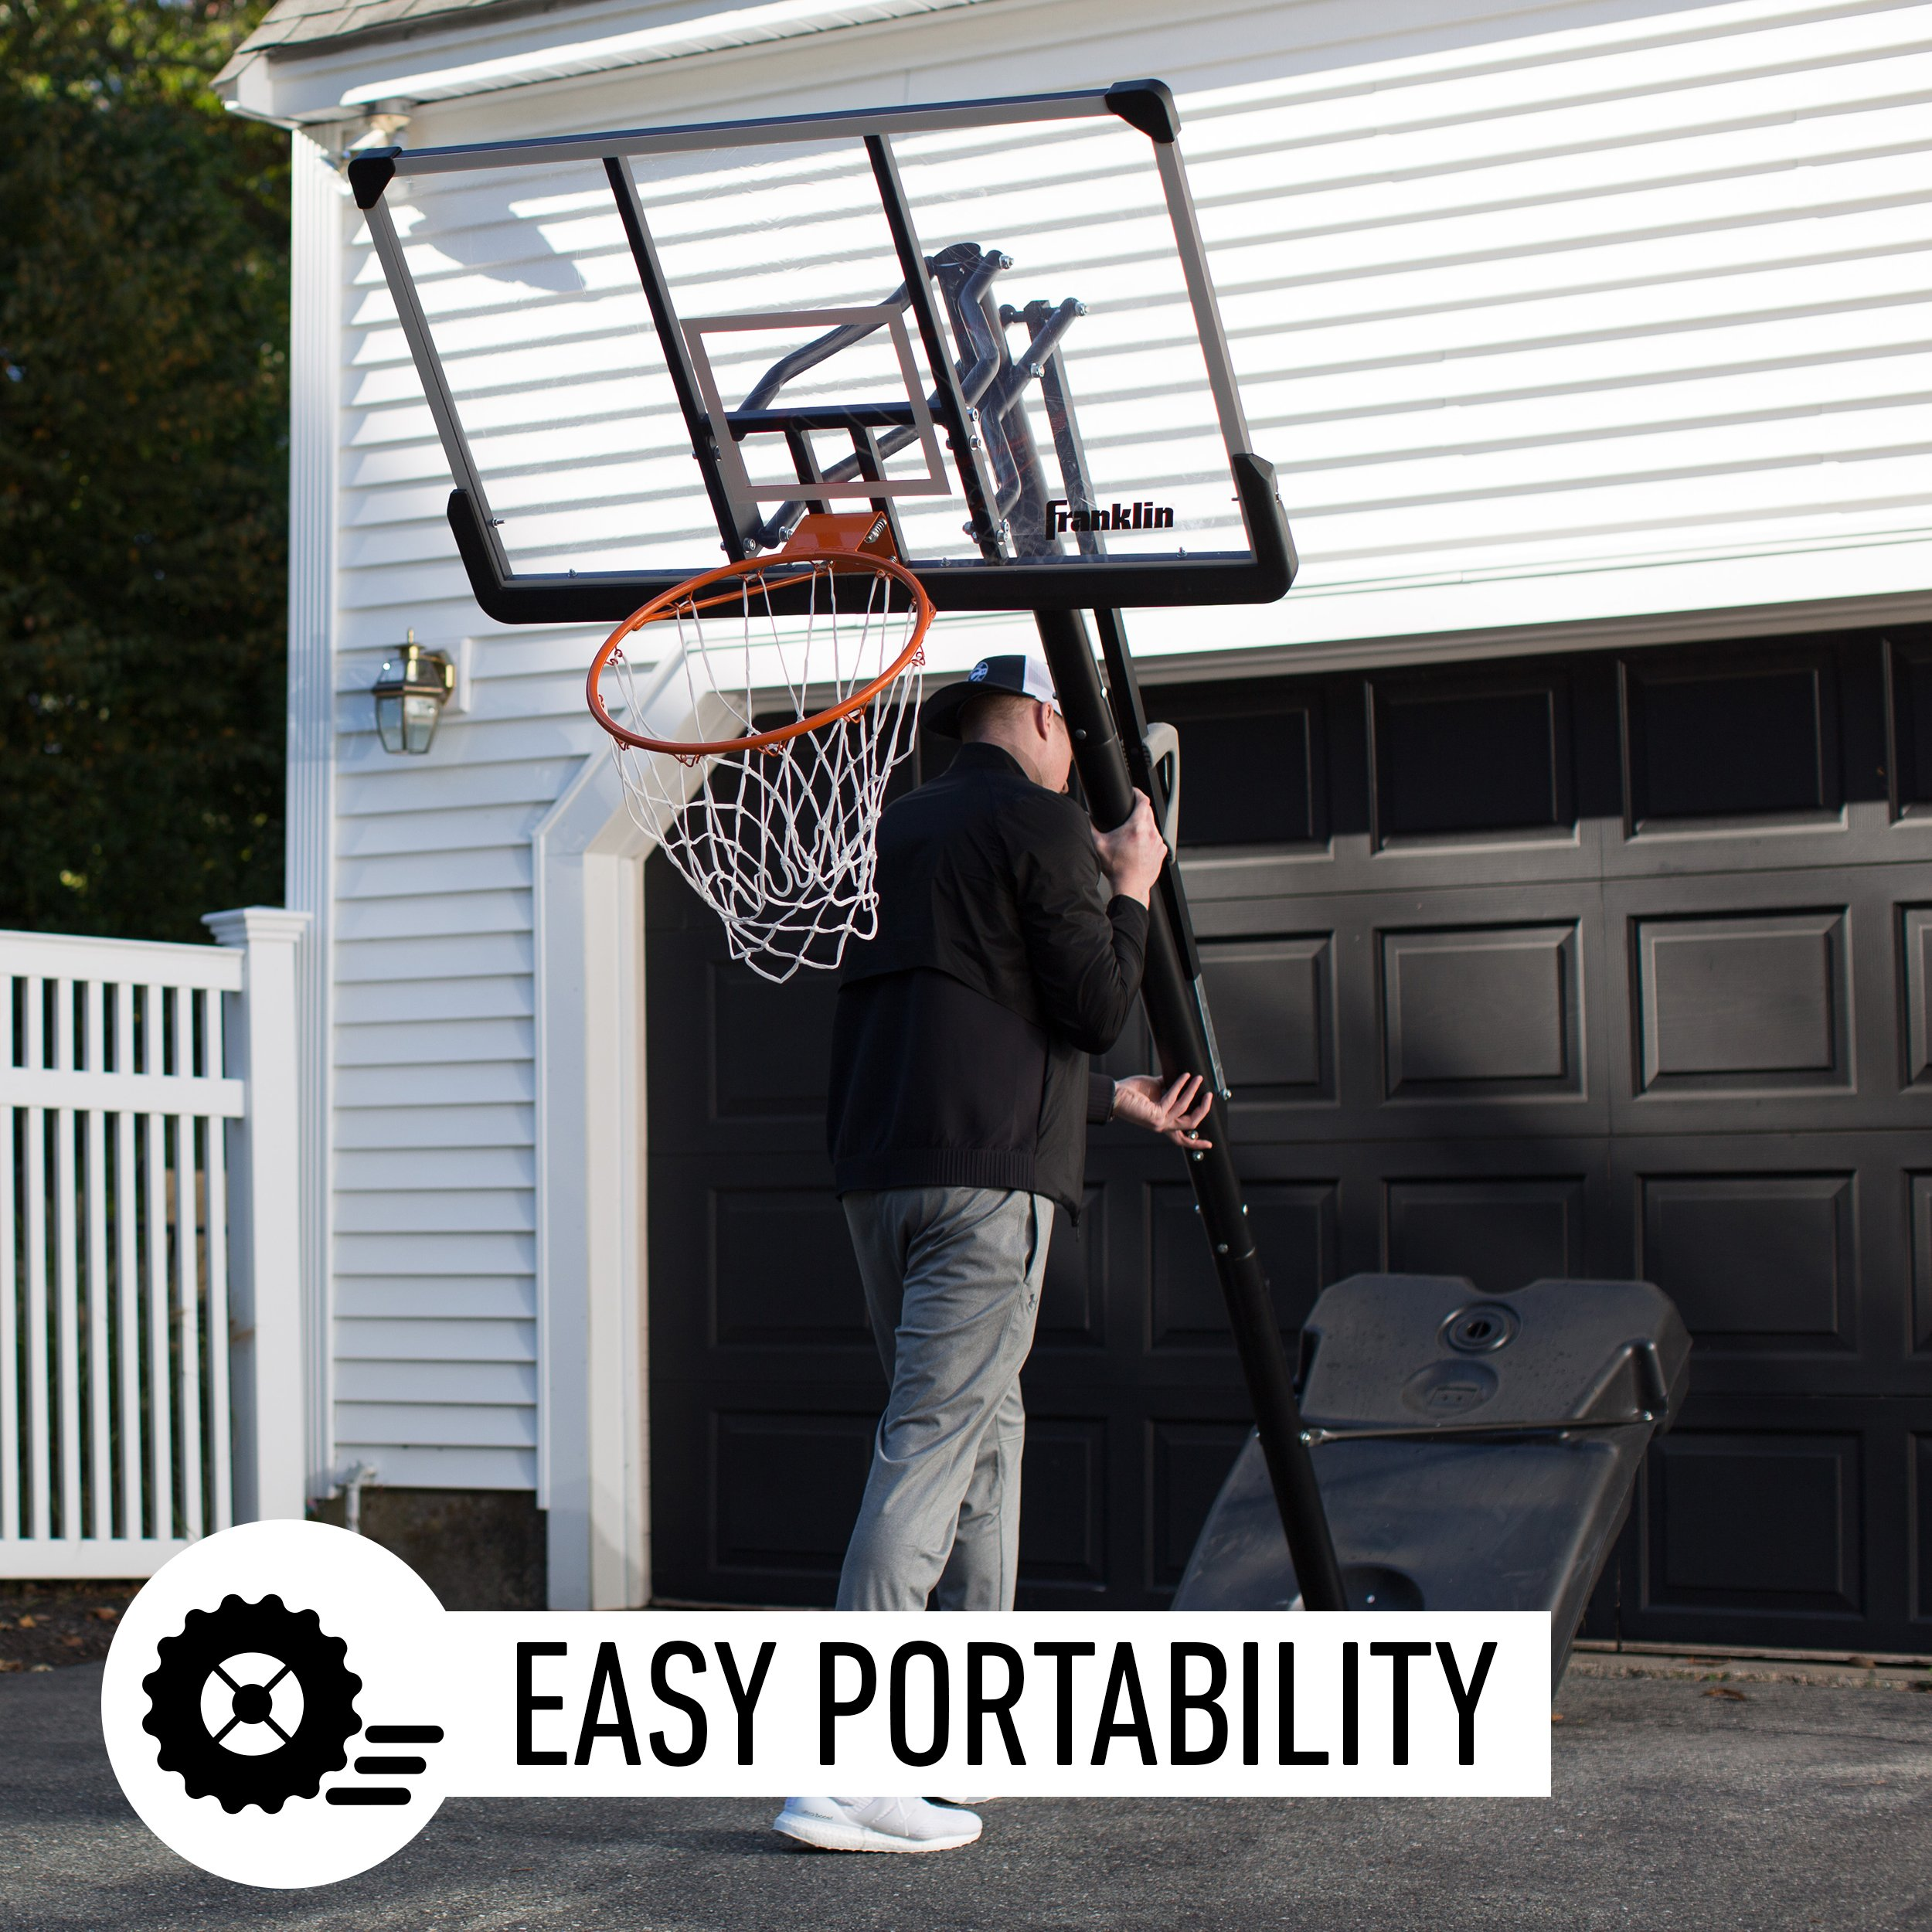 Franklin Sports Portable Basketball Hoop – Authentic Street Basketball Hoop for Adults and Kids – Adjustable Basketball Hoop with Rolling Mechanism – Play Basketball in Your Driveway by Franklin Sports (Image #4)